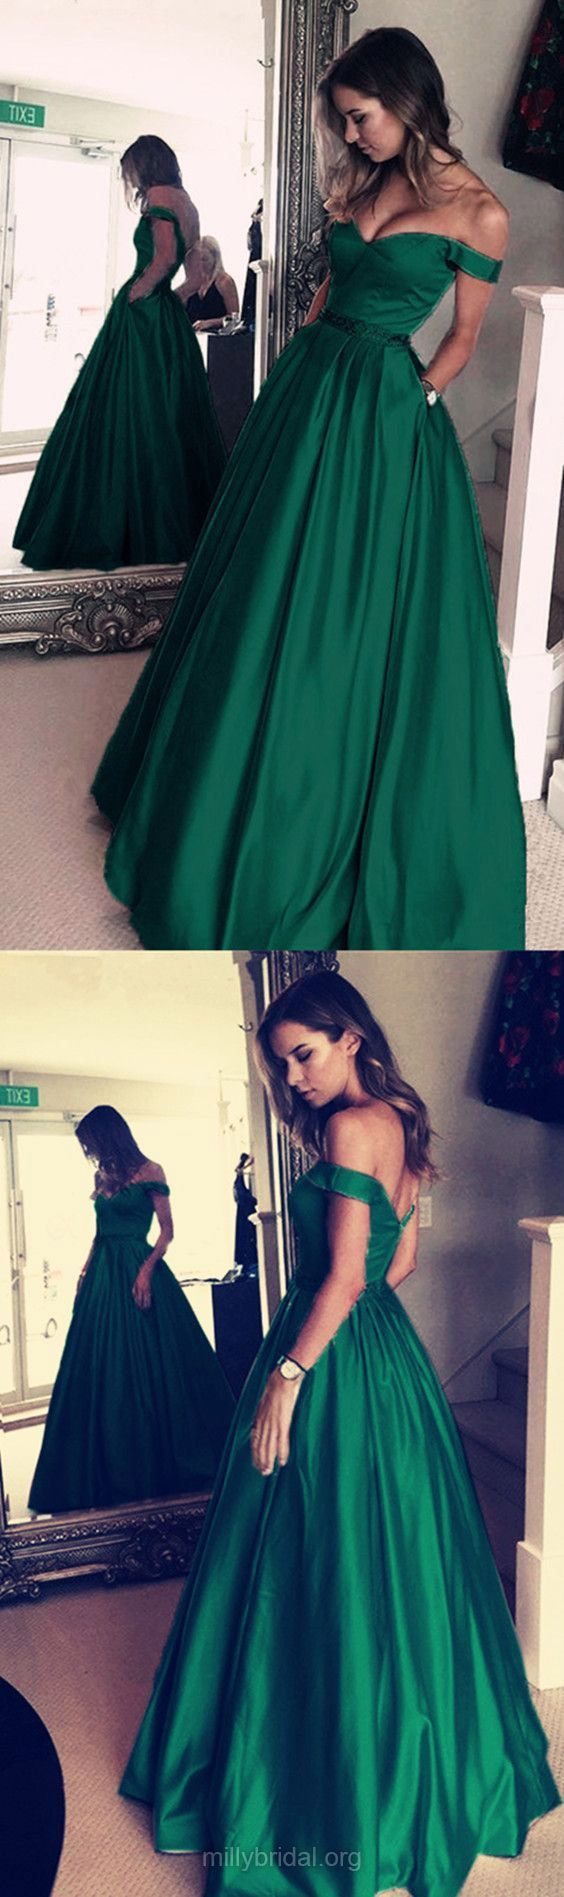 Green Prom Dresses, Long Prom Dresses, Ball Gown Prom Dresses Off-the-shoulder, 2018 Prom Dresses Satin with Beading #WeddingDressesBallGown #promdresses